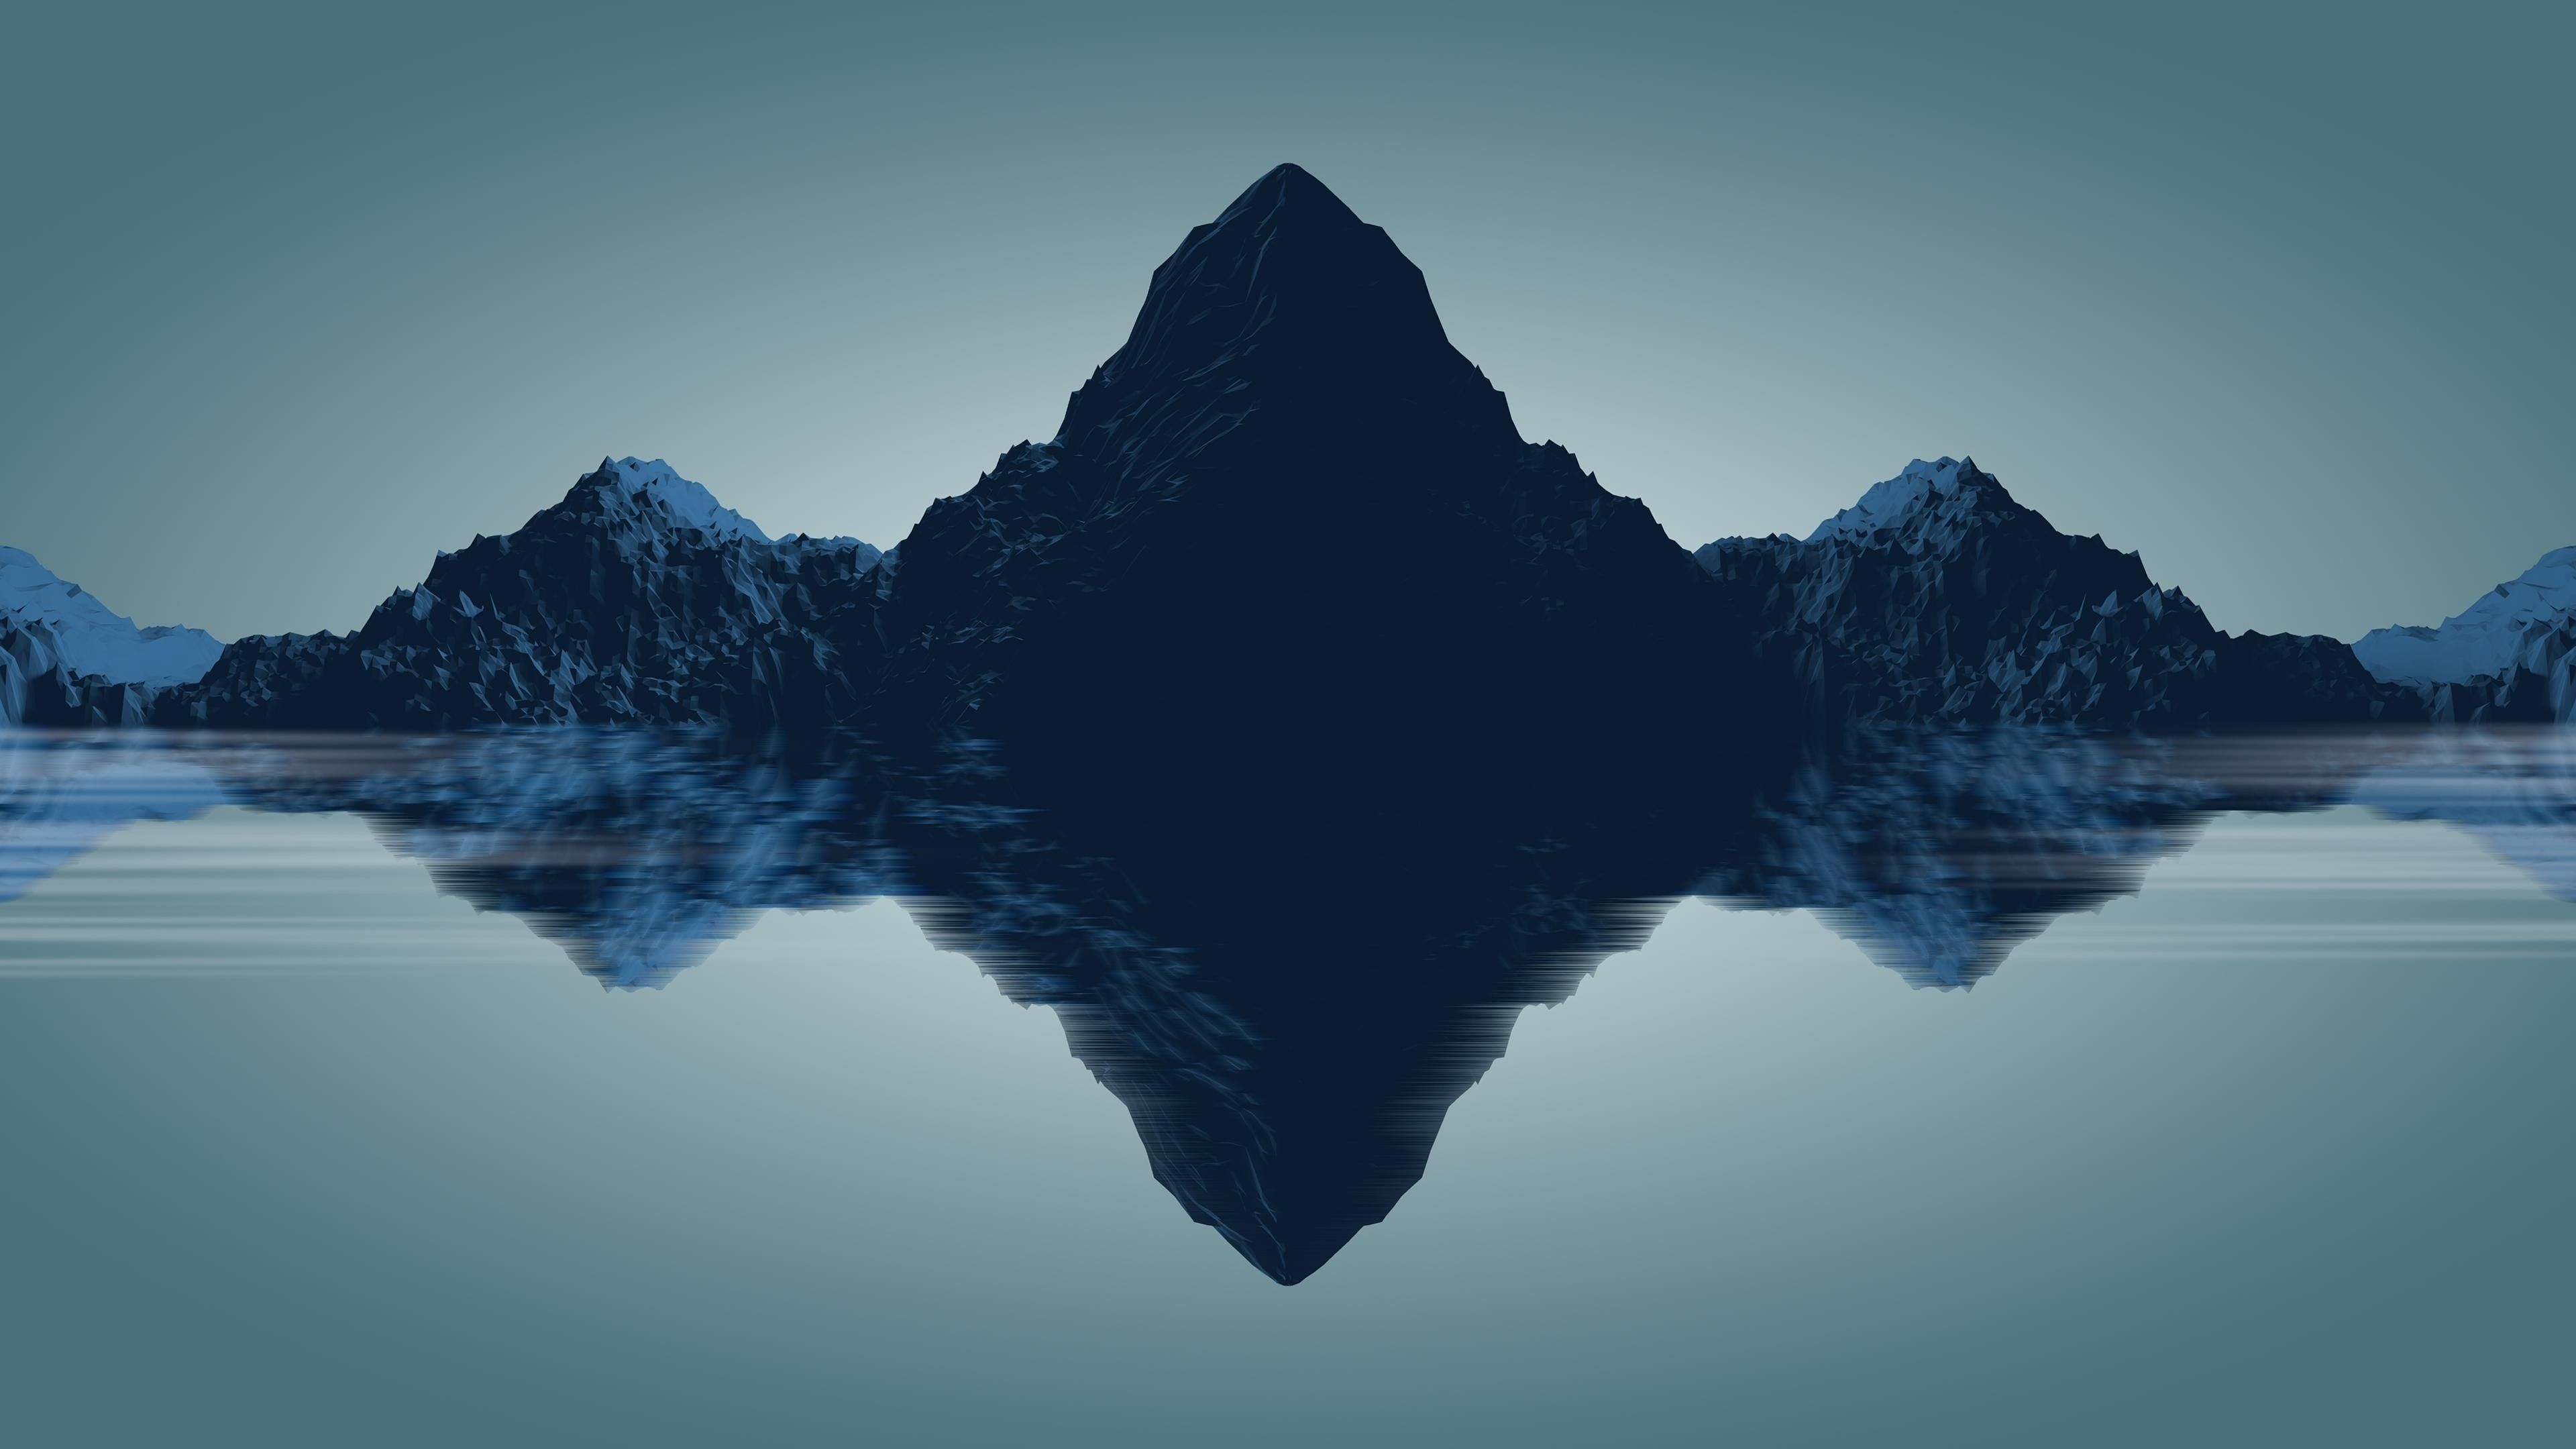 Reflection Minimalist 4k Wallpaper [3840 x 2160] en 2020